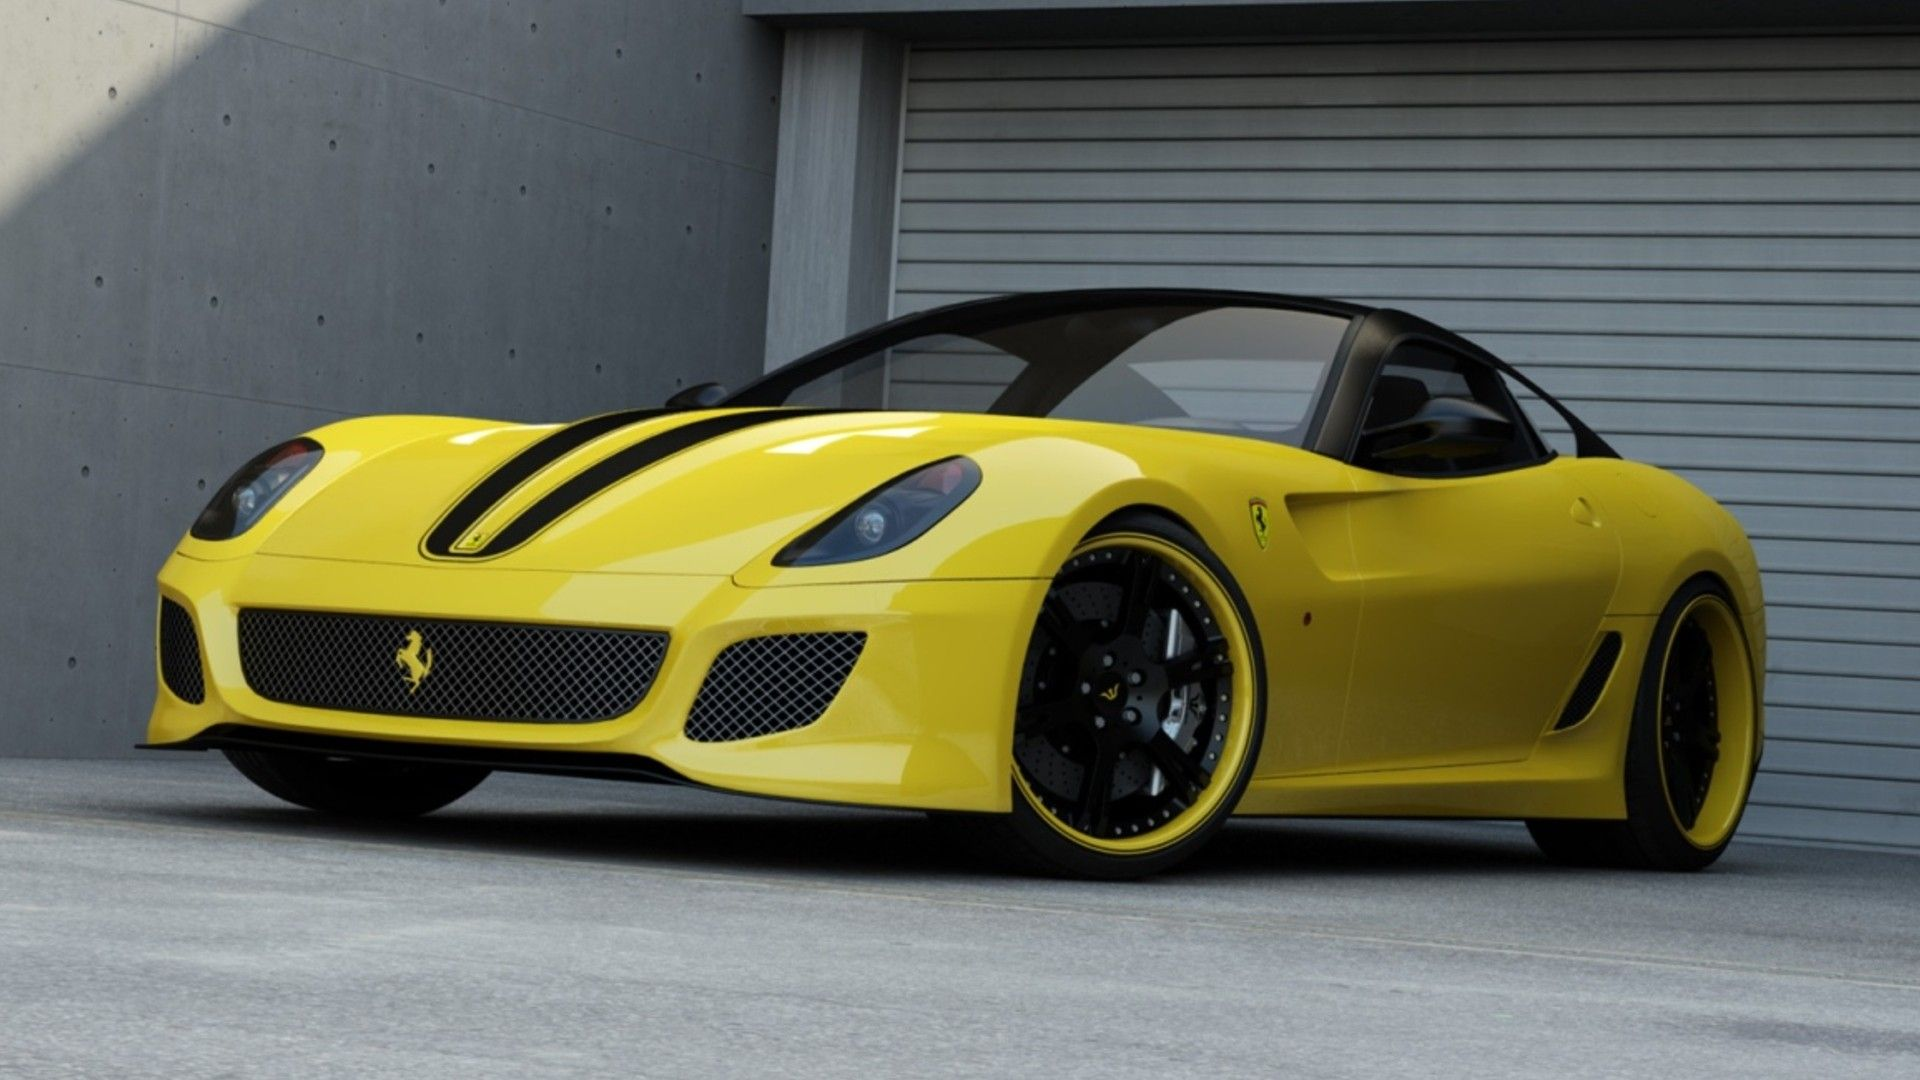 Ferrari 599 Wallpaper With Resolution of Full View and Download